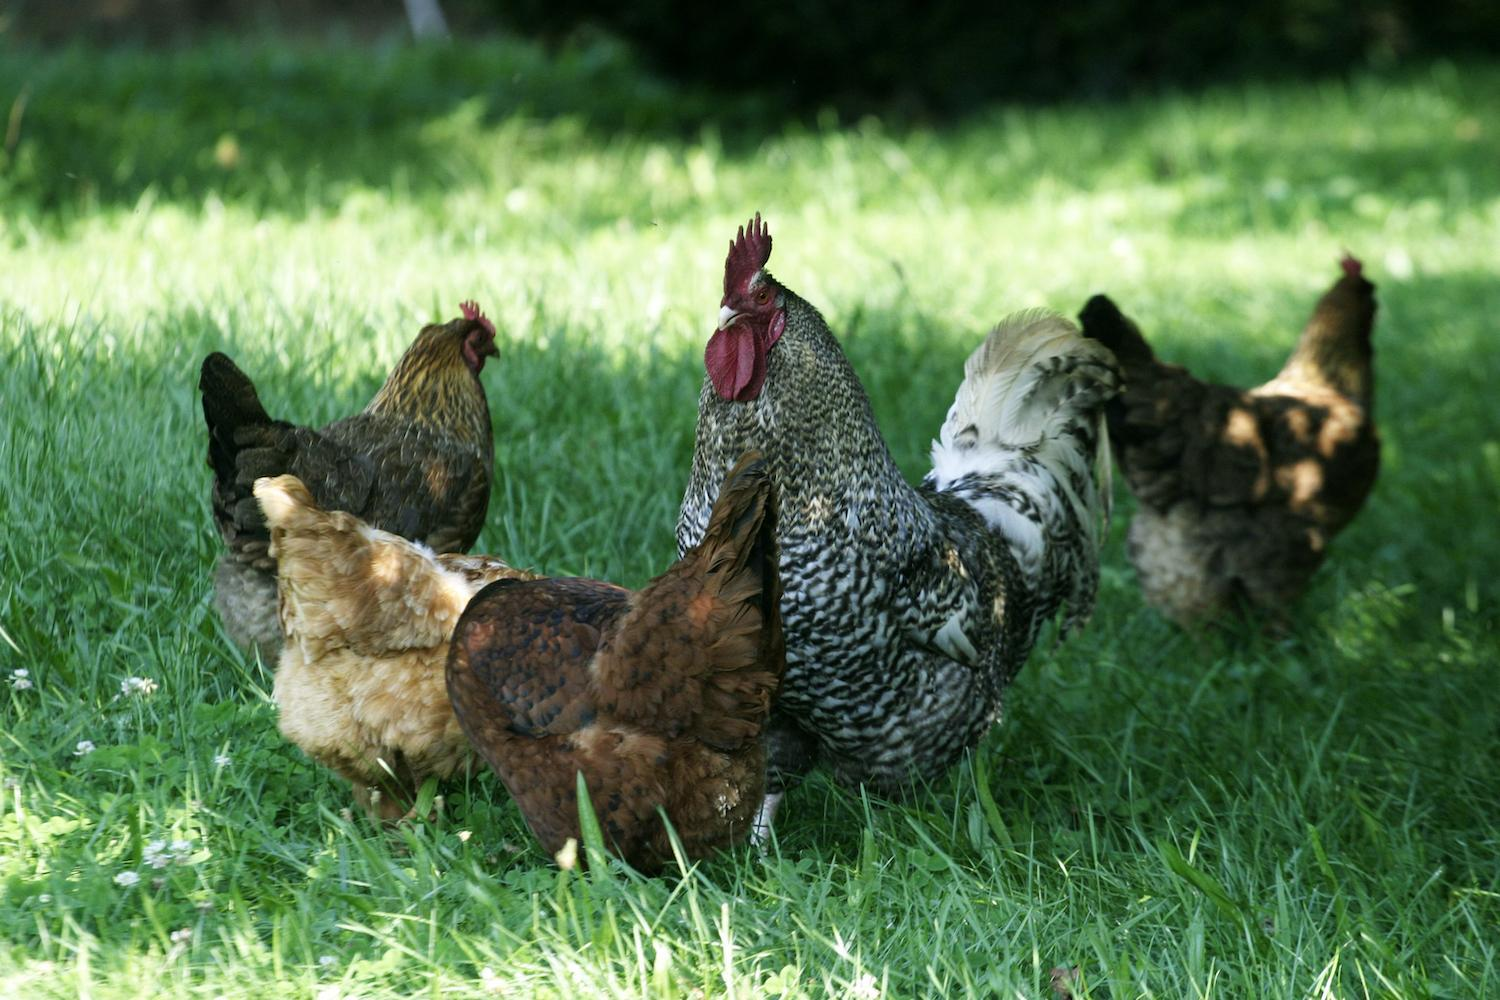 Warmer months: How poultry can benefit from a no-corn diet